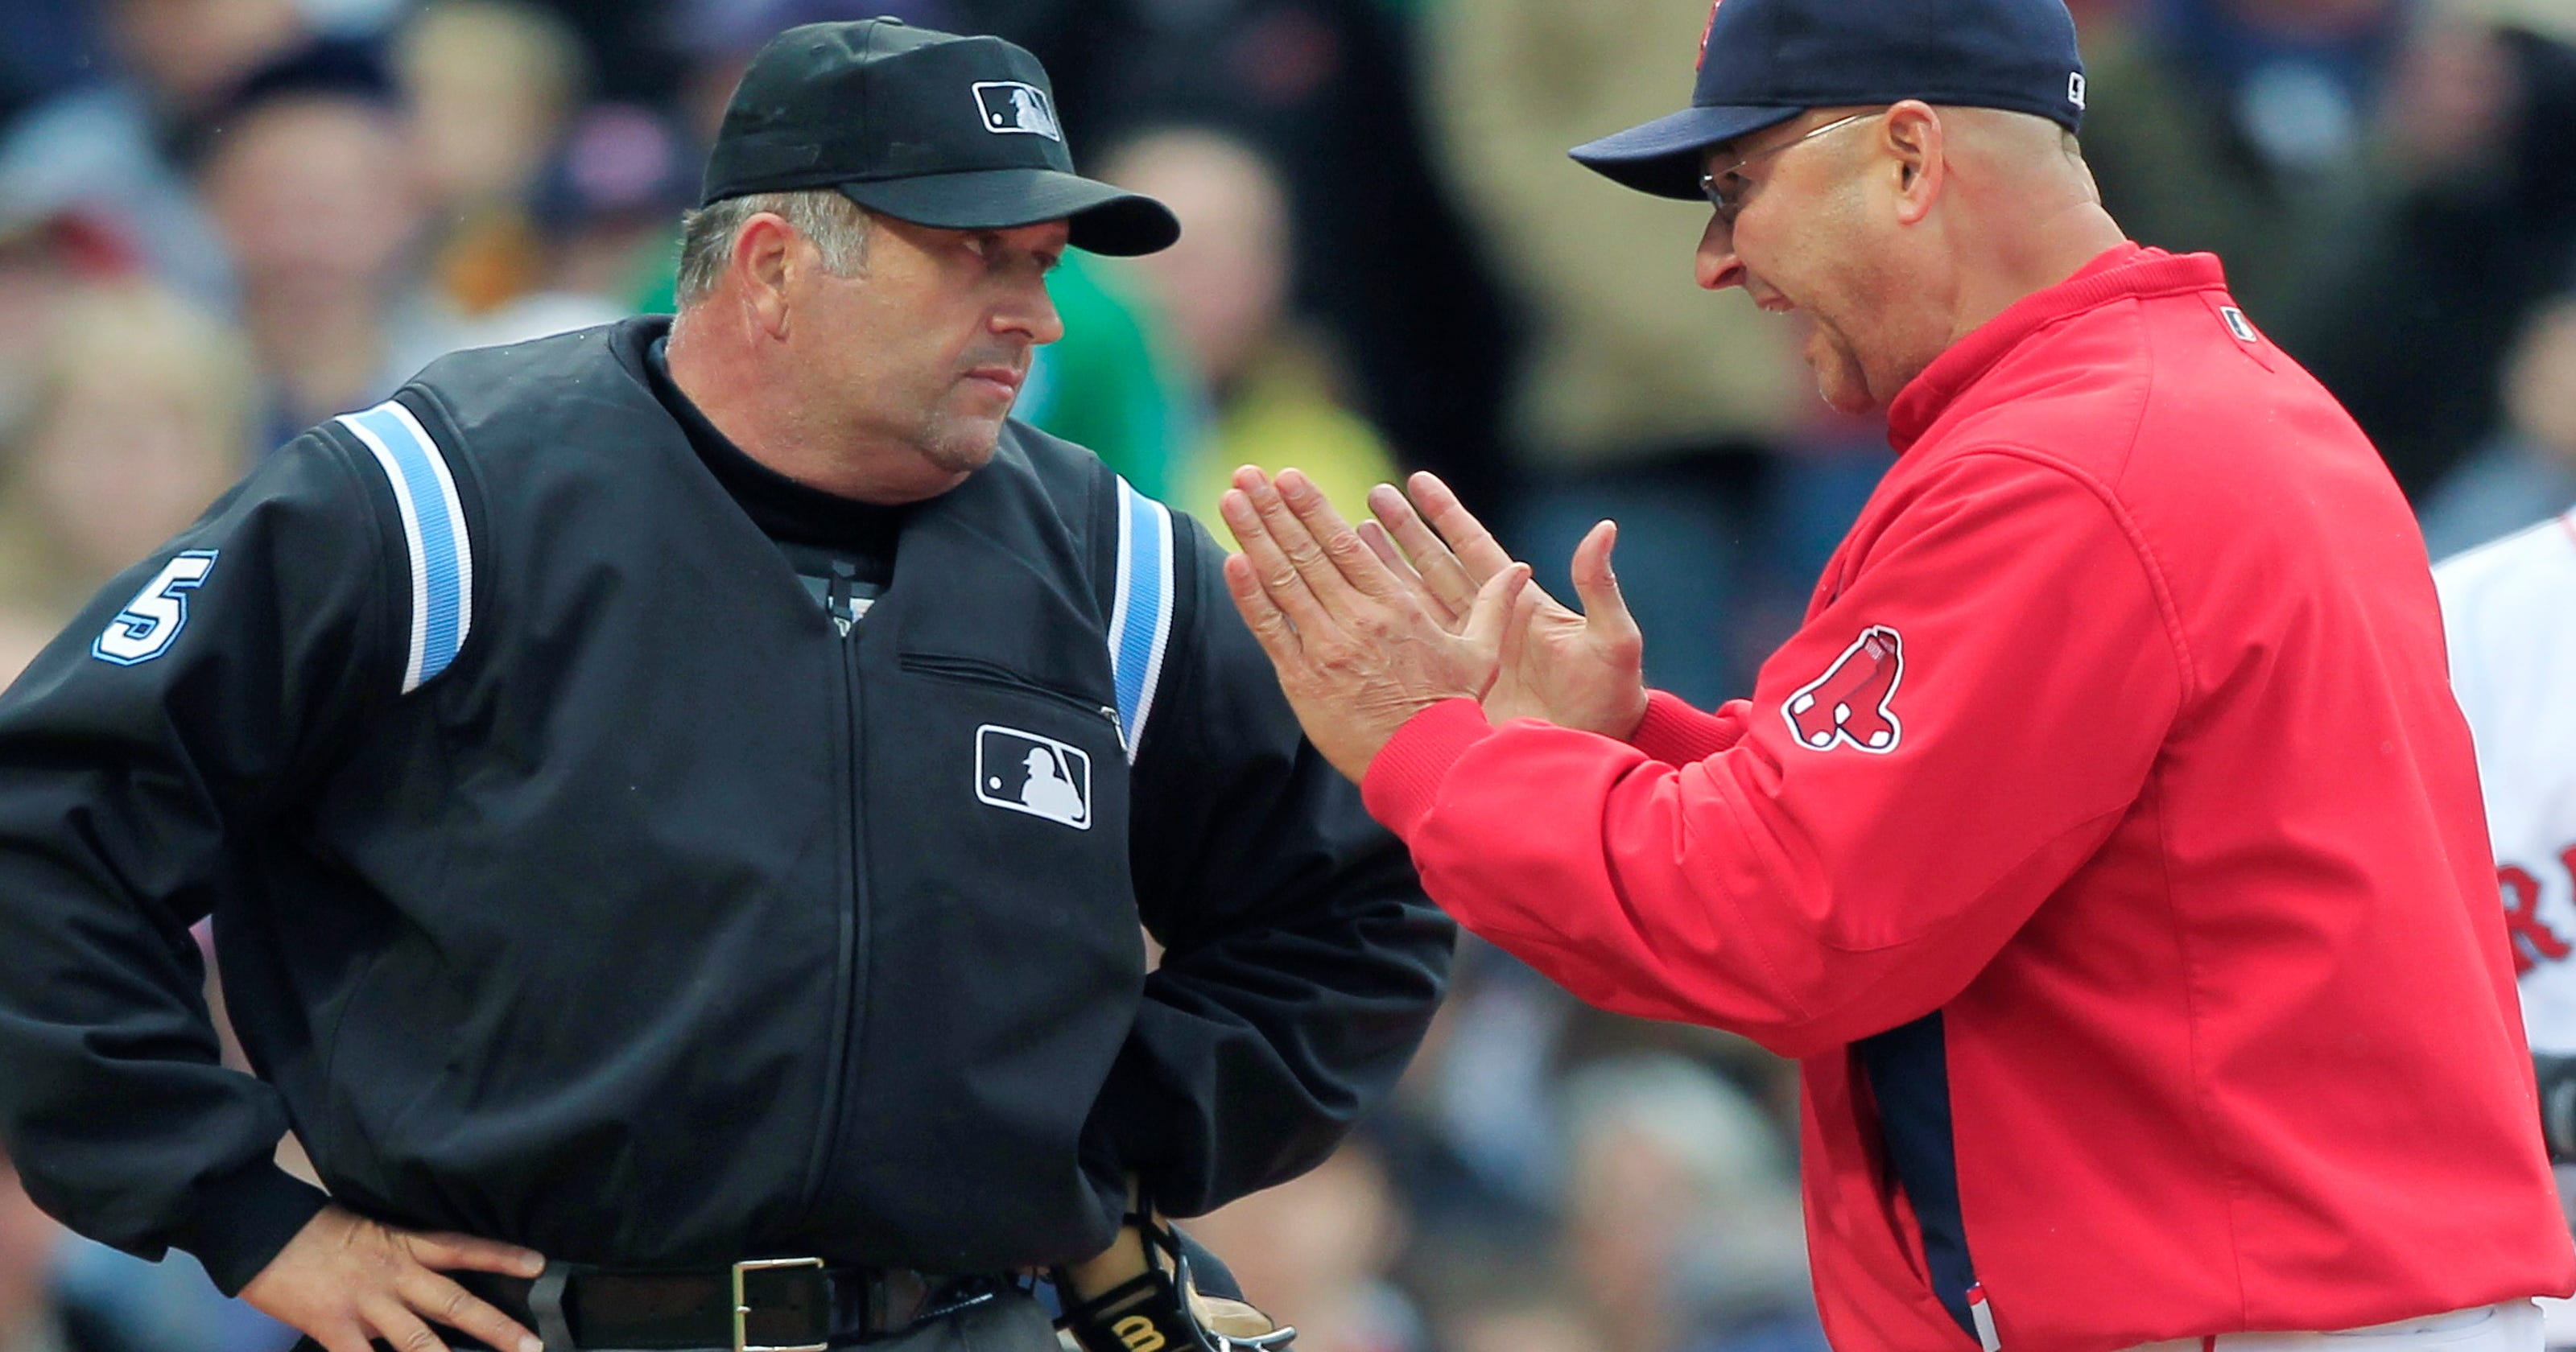 Palm Springs  Dale Scott announces his retirement as an MLB umpire e448893a08c